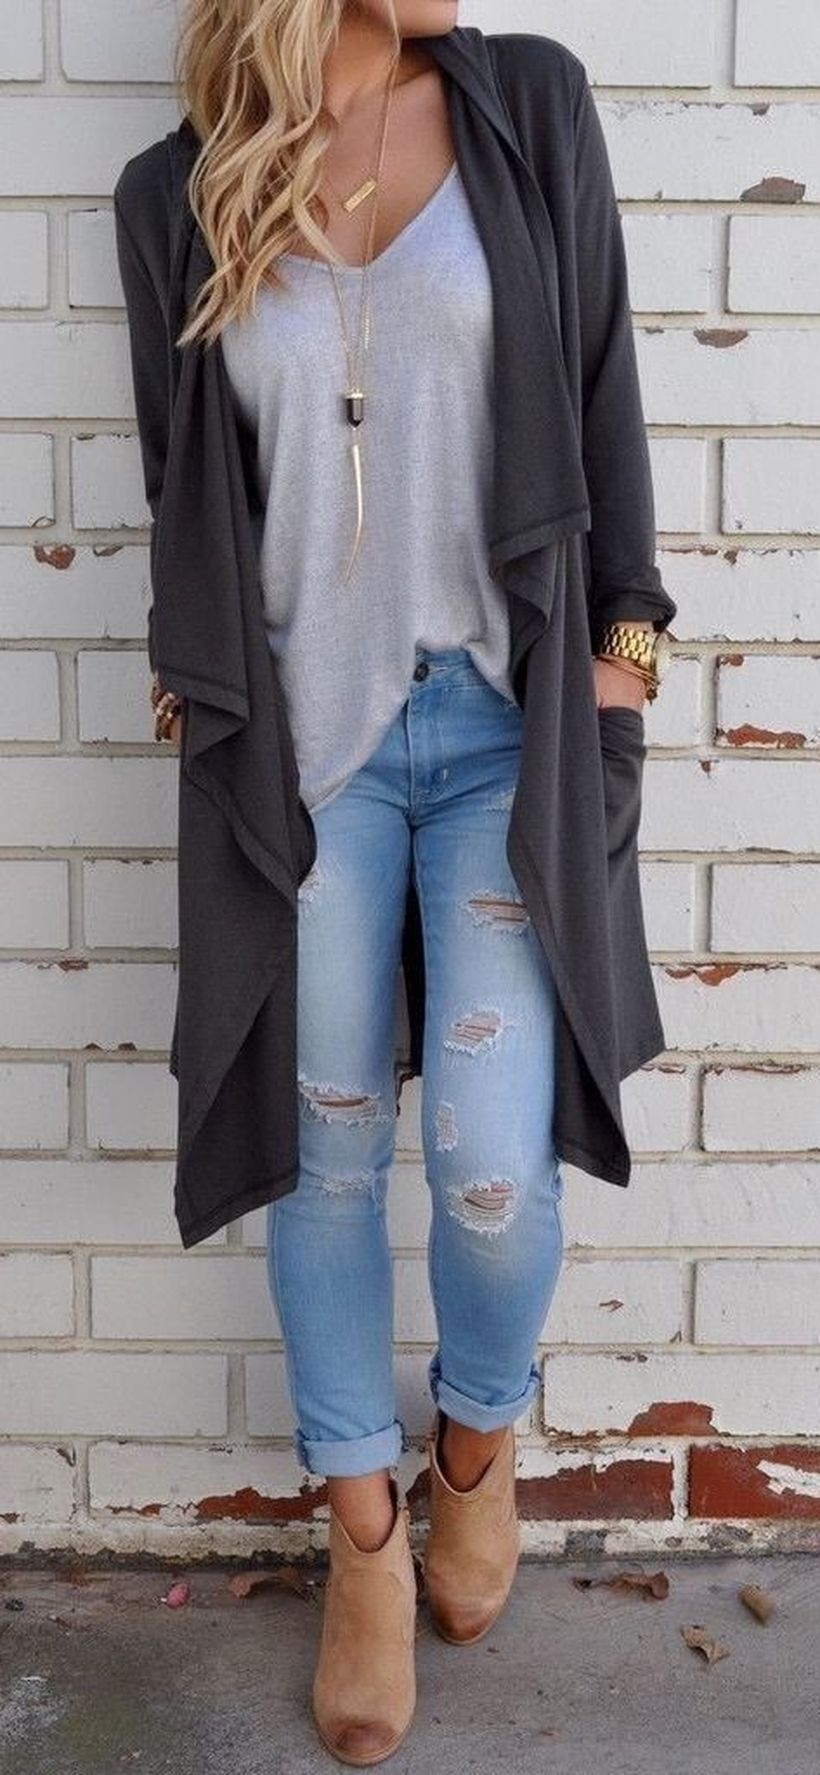 Casual fall fashions trend inspirations 2017 92